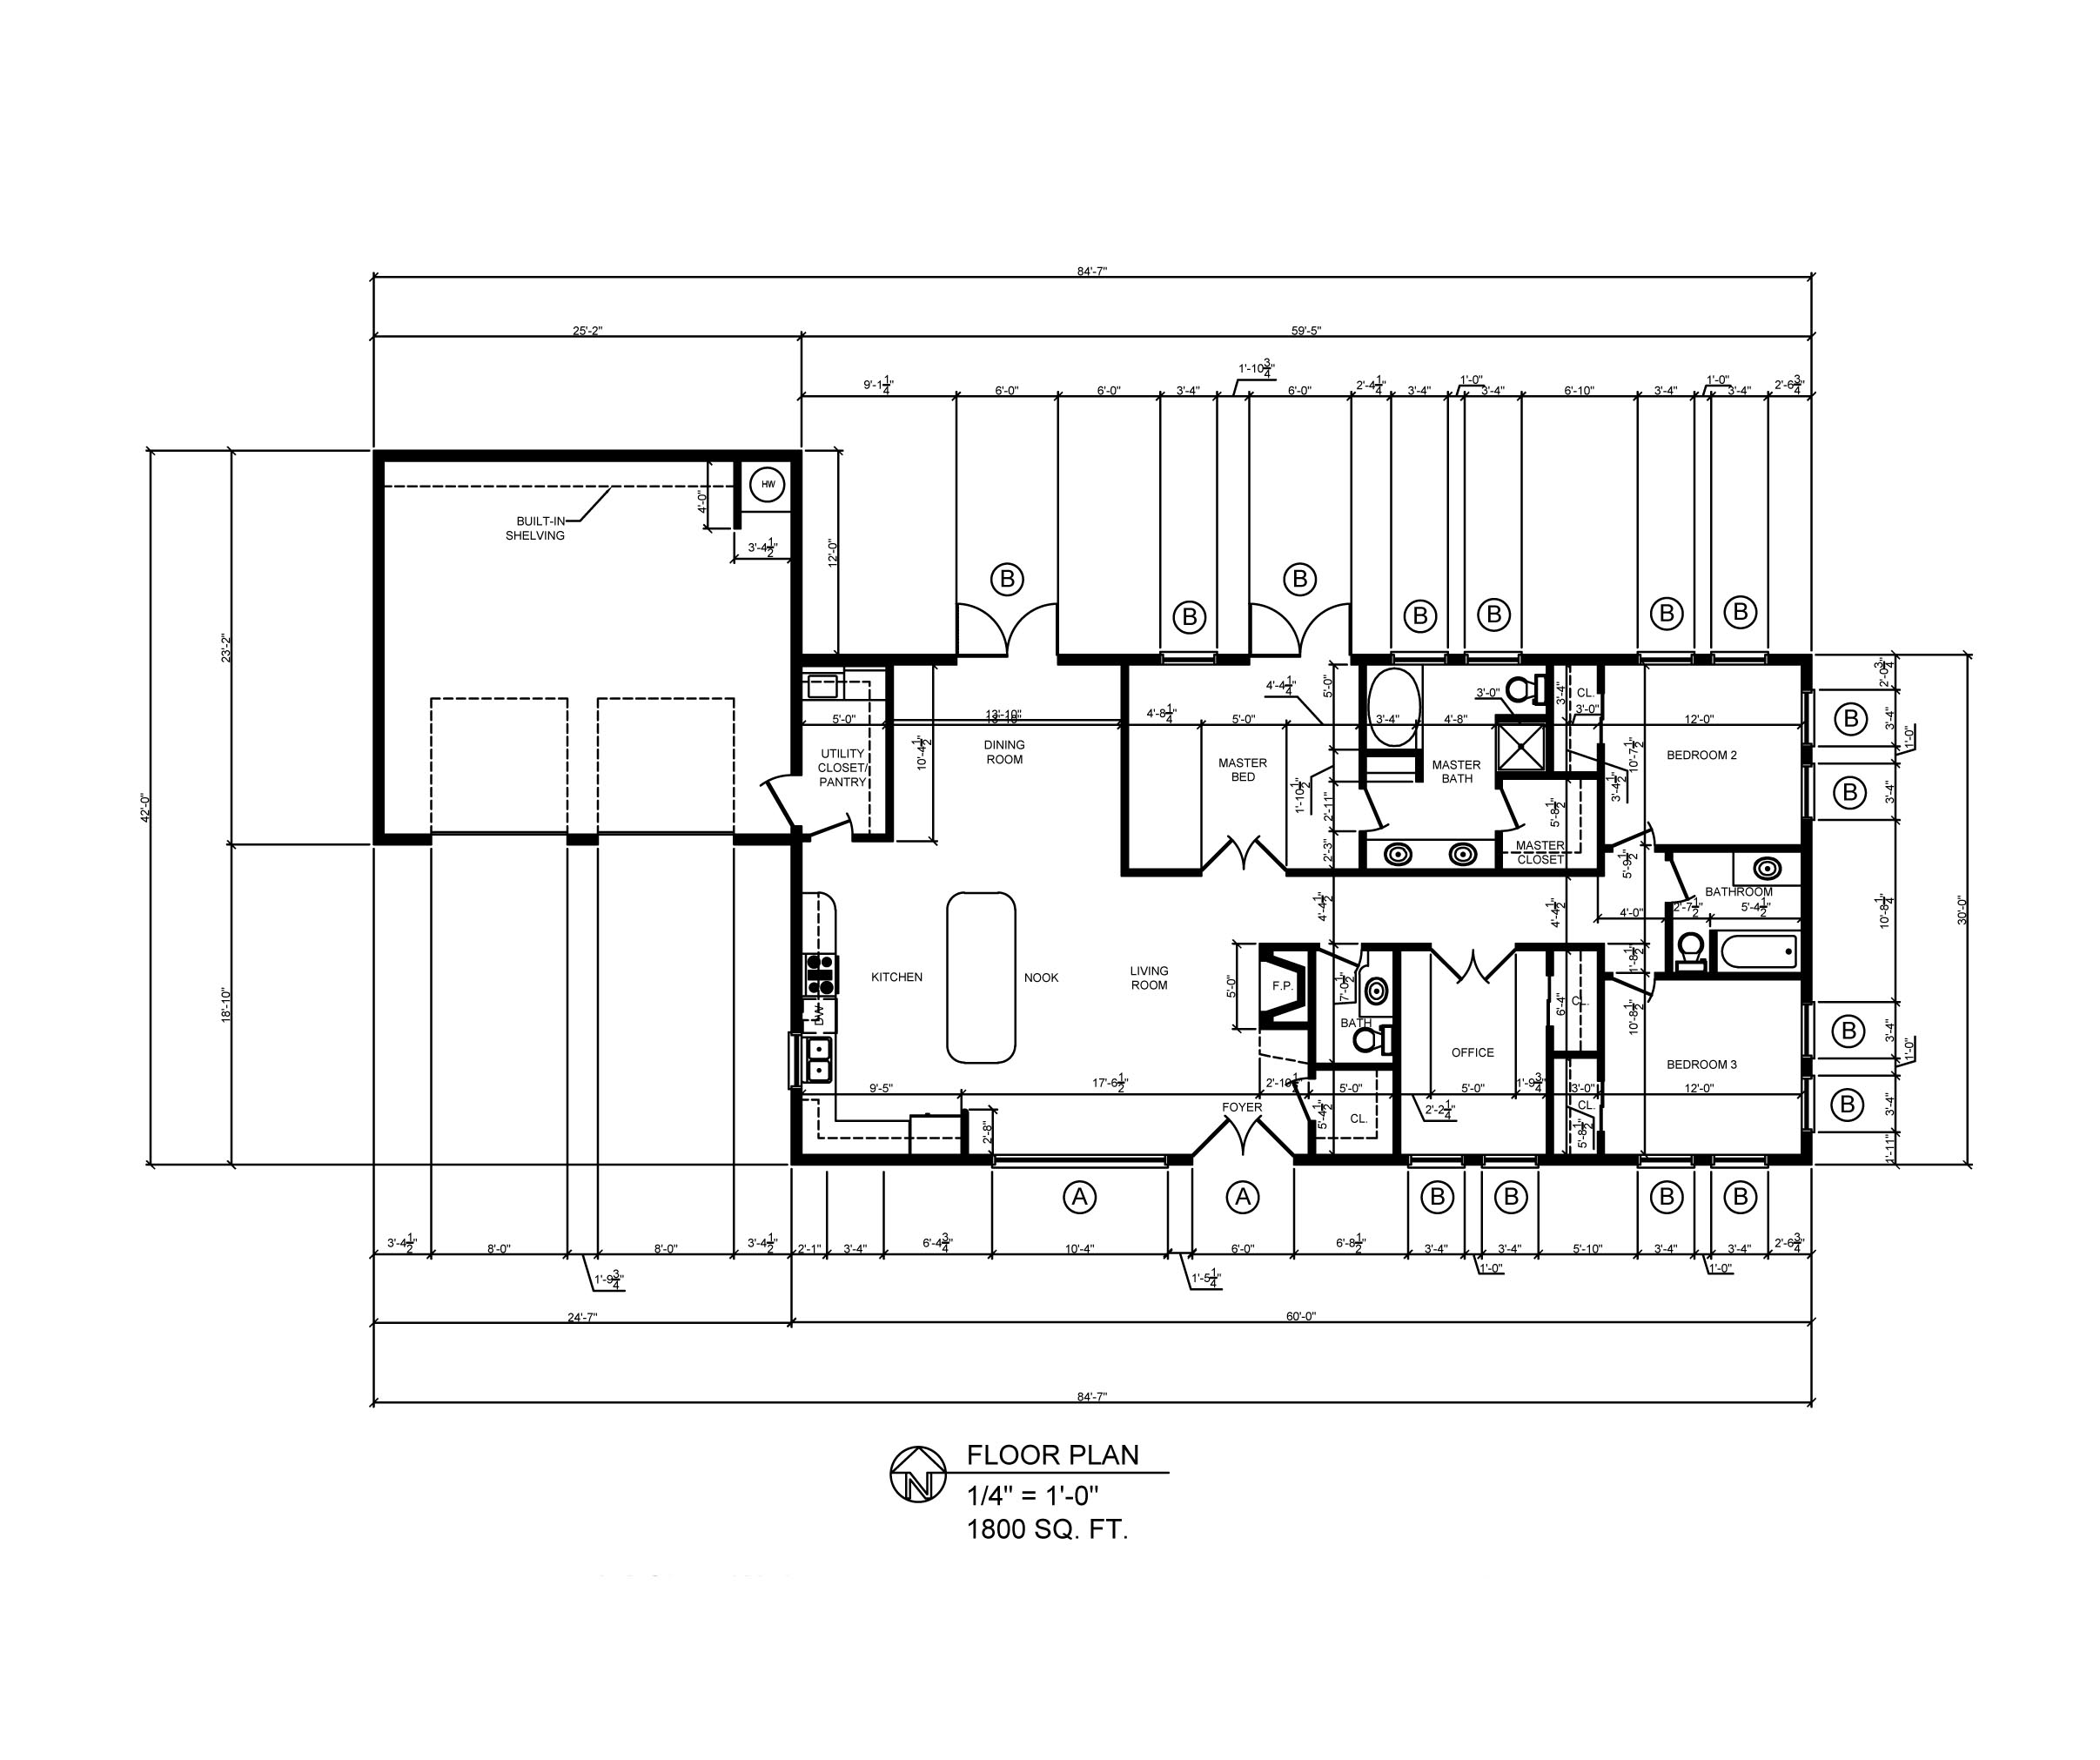 AutoCAD Architectural Drawings by Steven Paulsen at